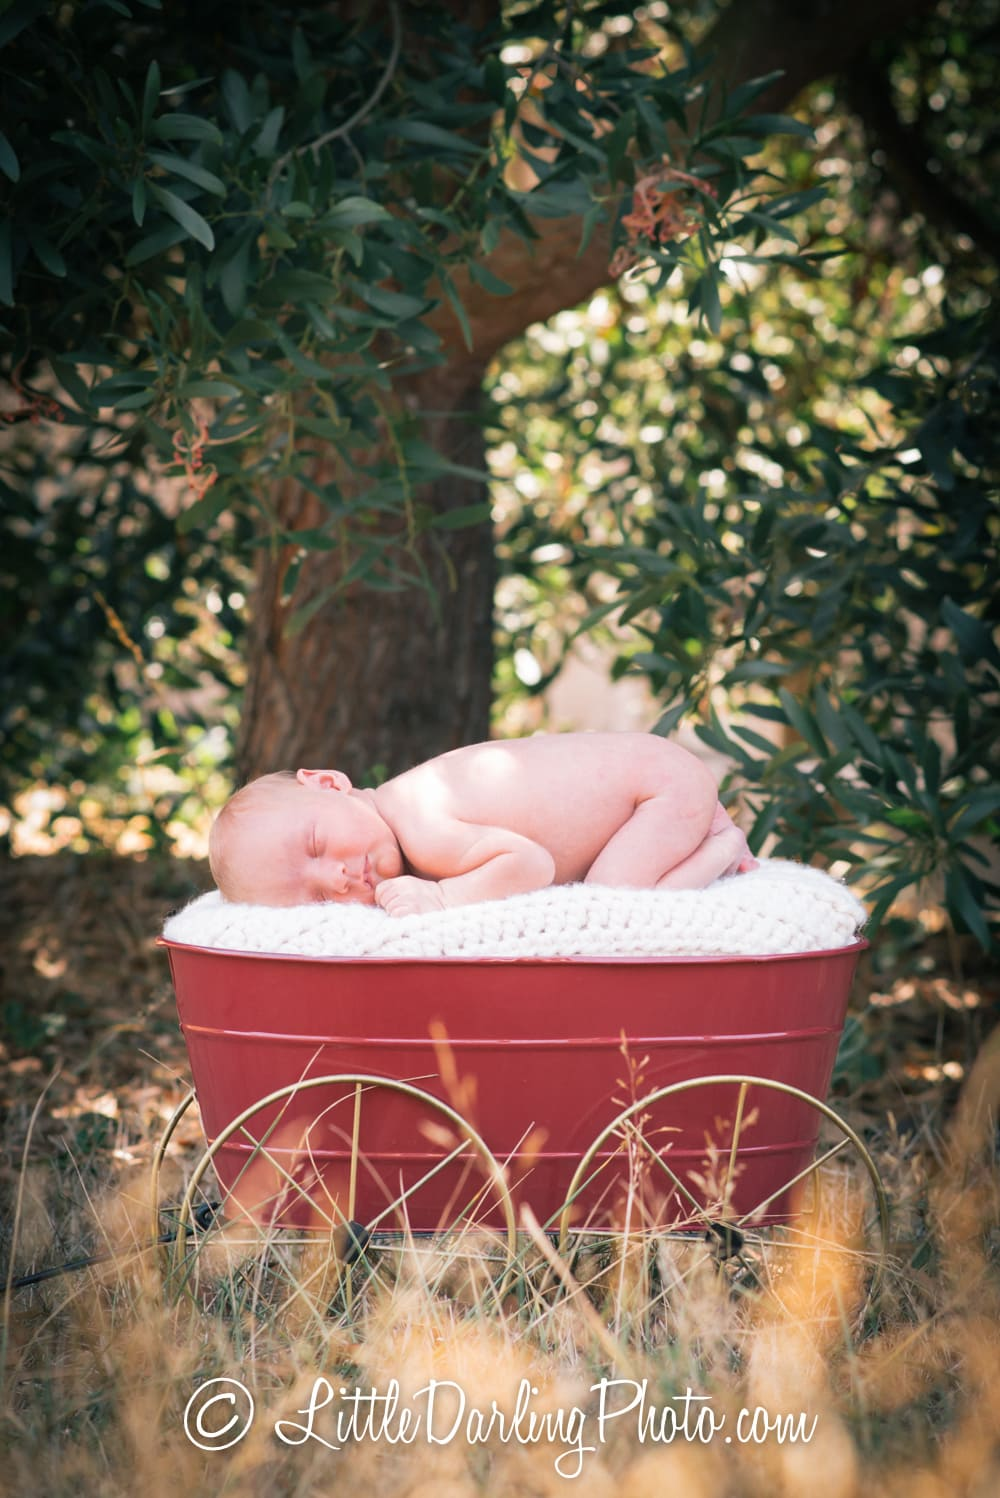 cutest-baby-portrait-outdoors-santa-cruz-california-950625-95060-1